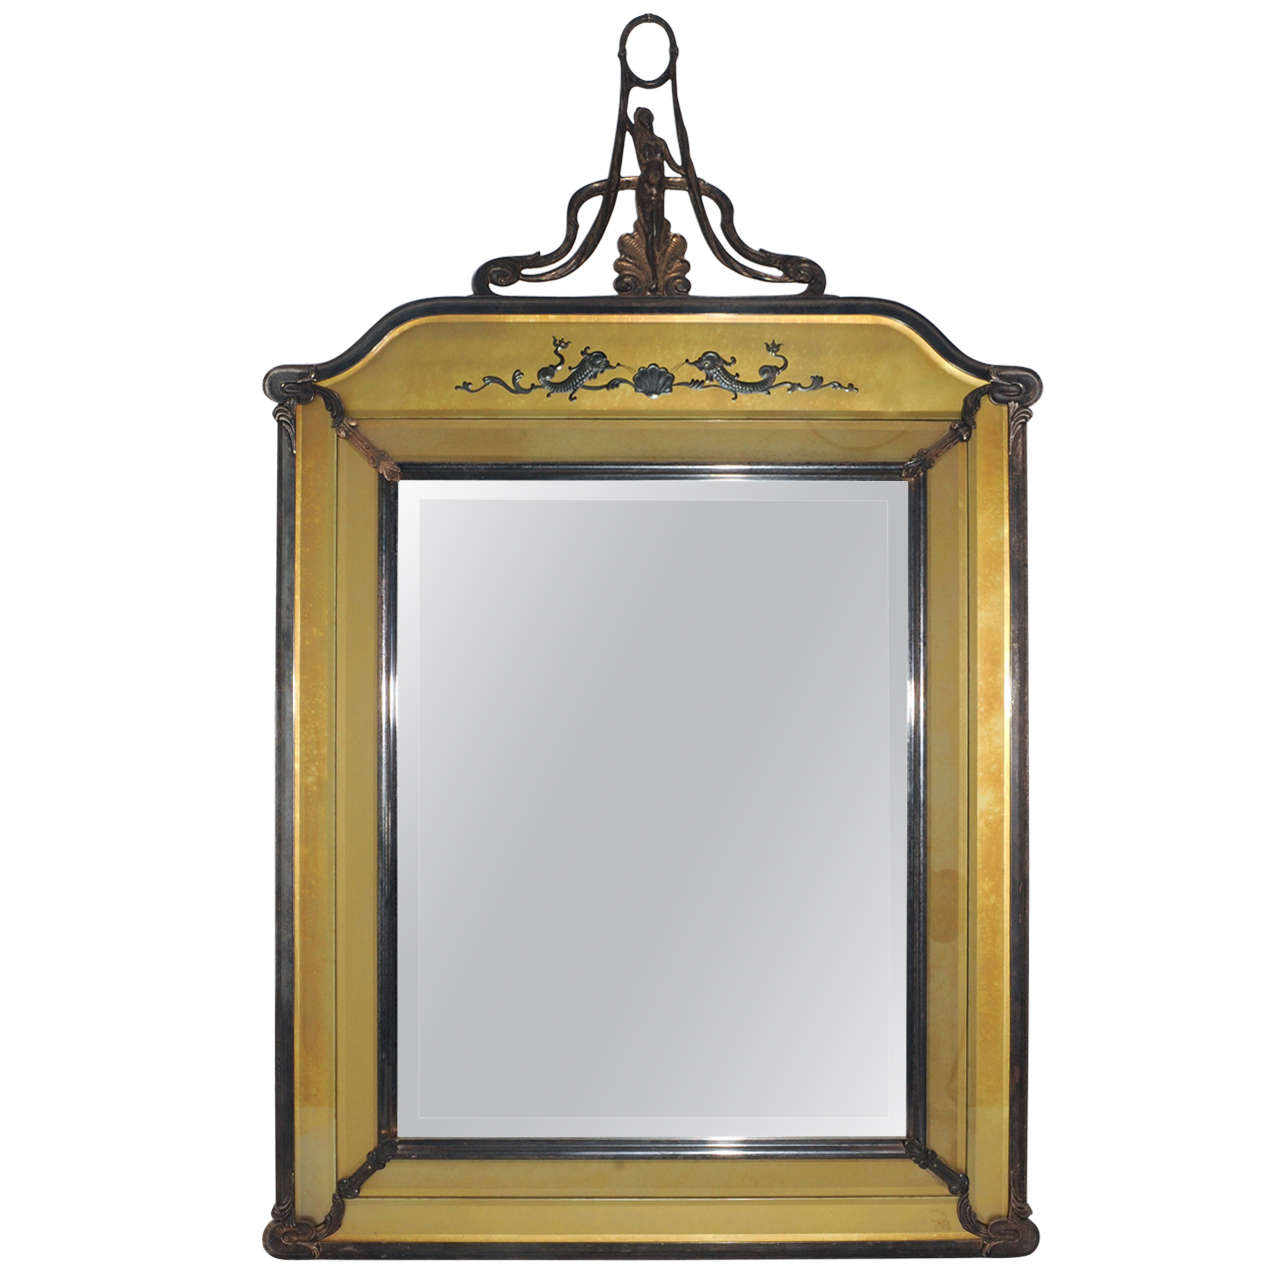 A silverplated double framed brass mirror in Art Nouveau style